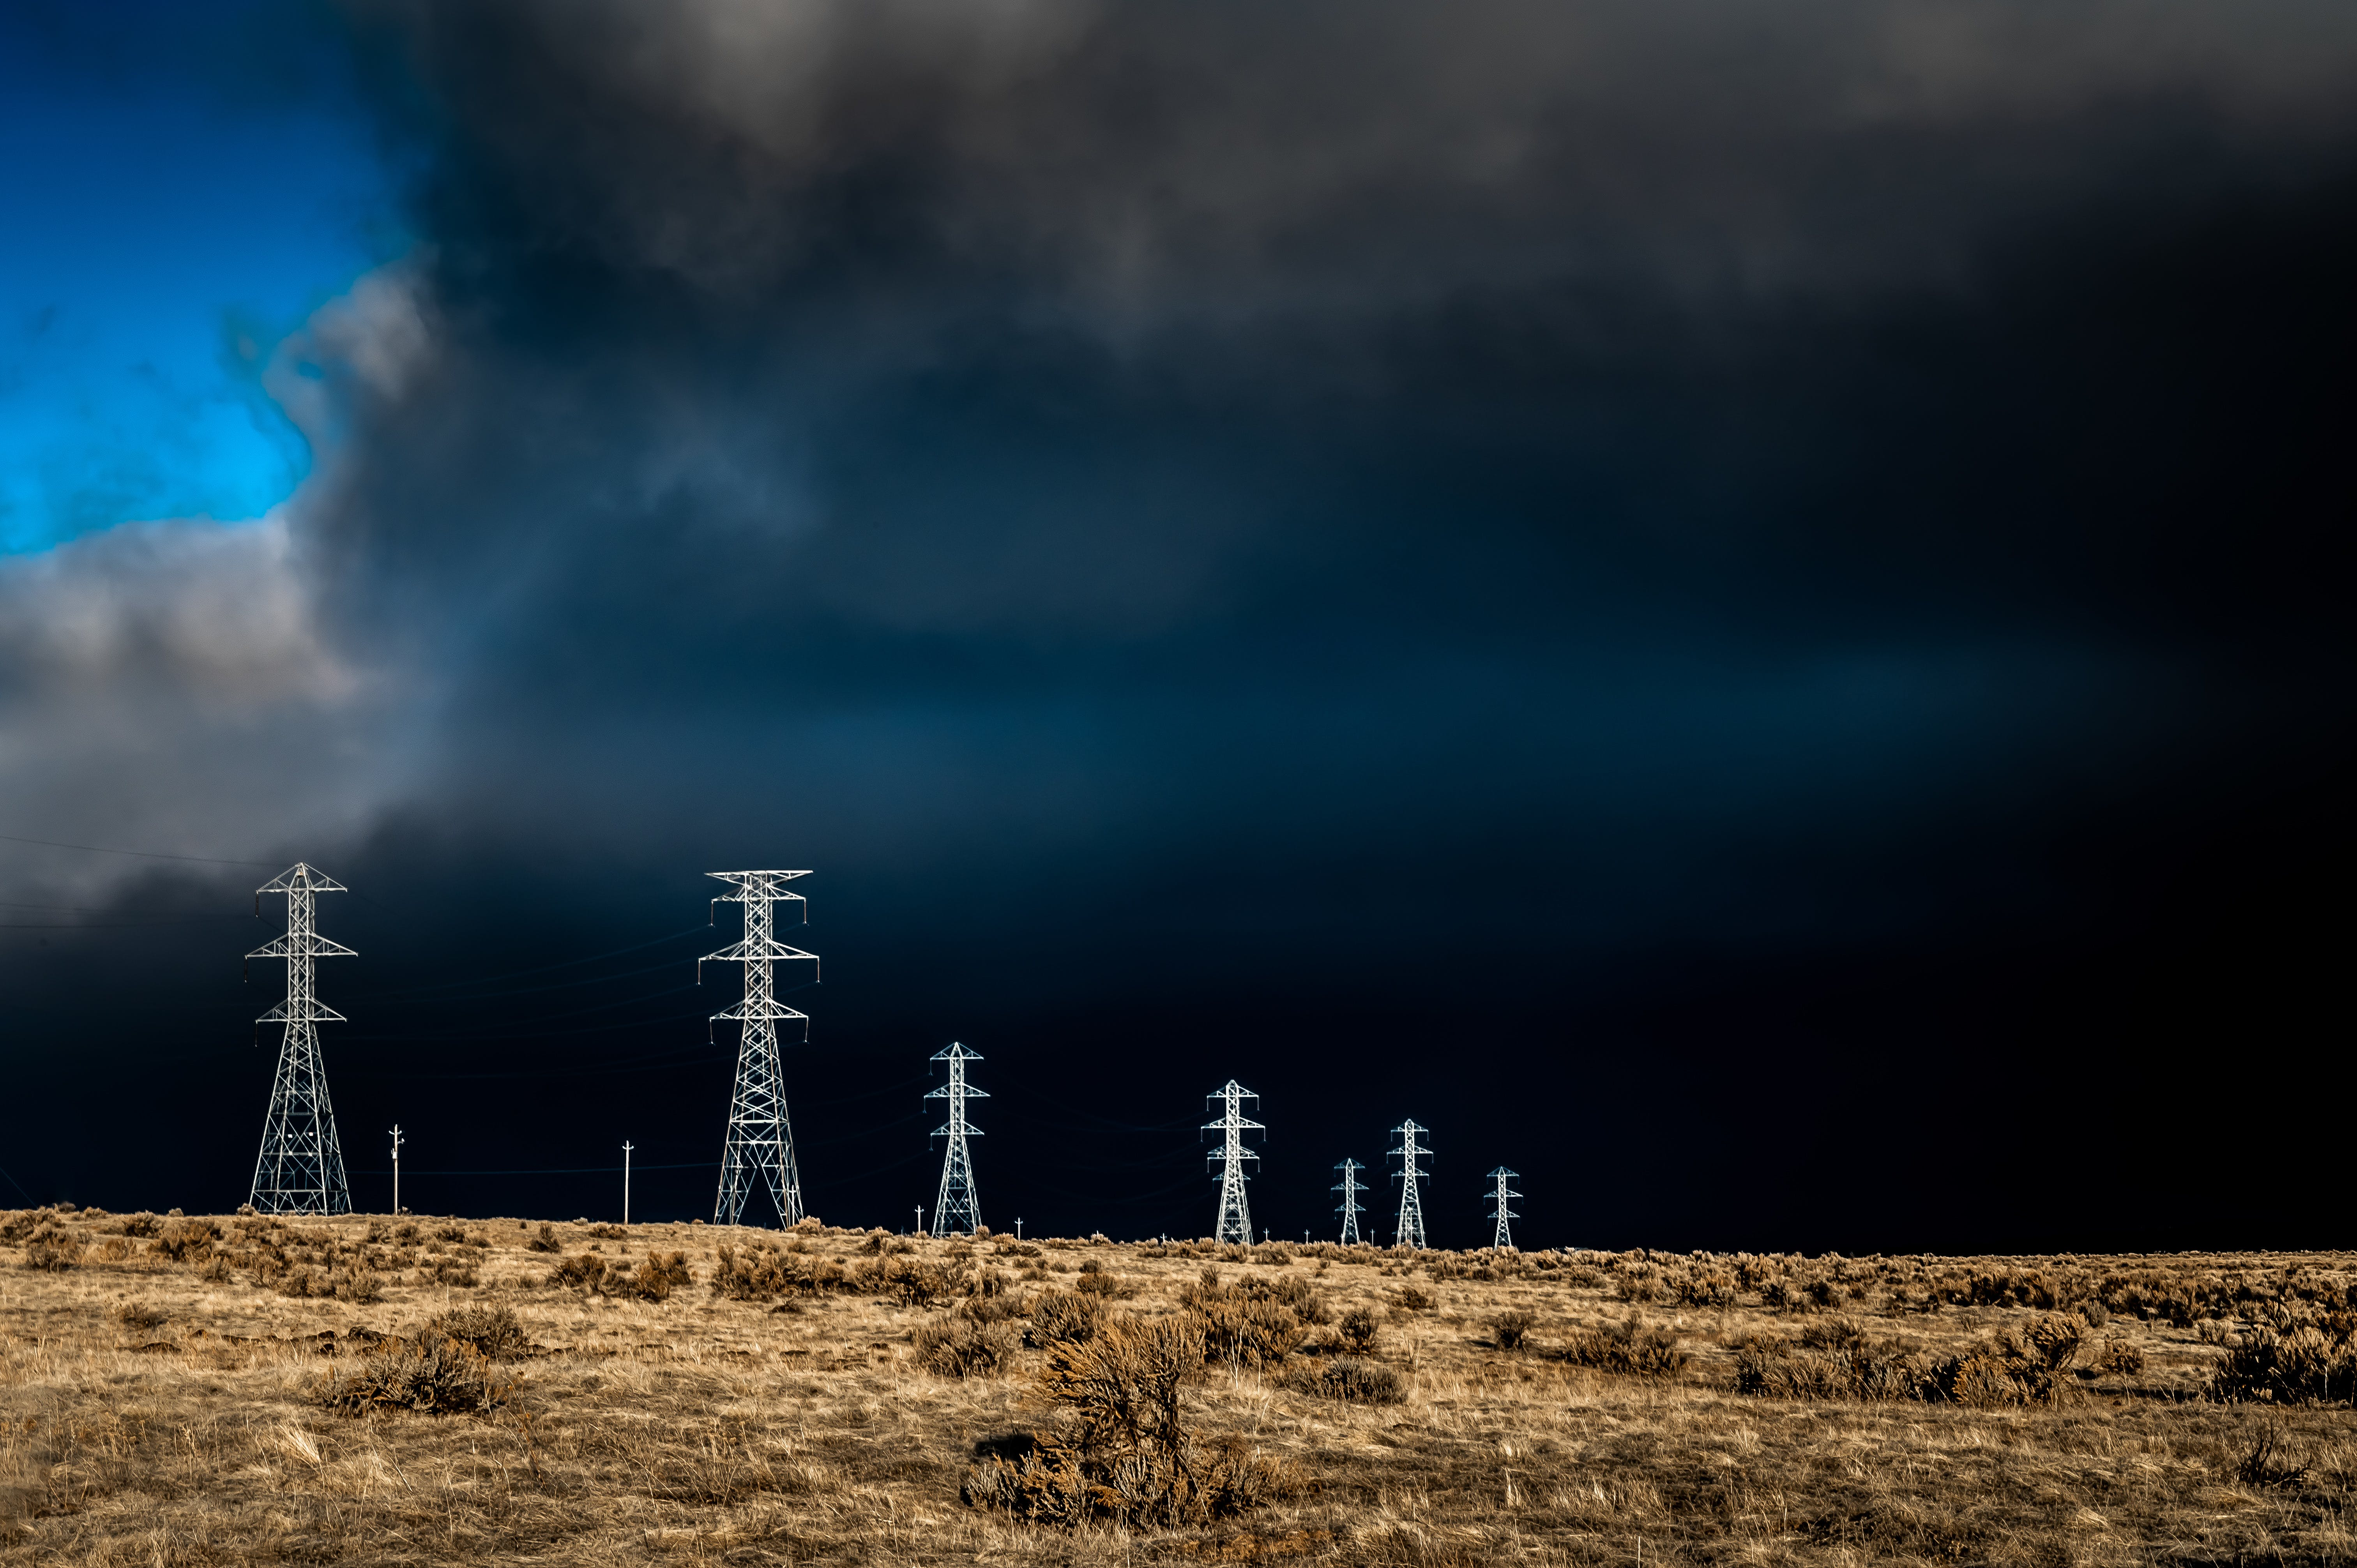 Electric Lines Over Cloudy Sky